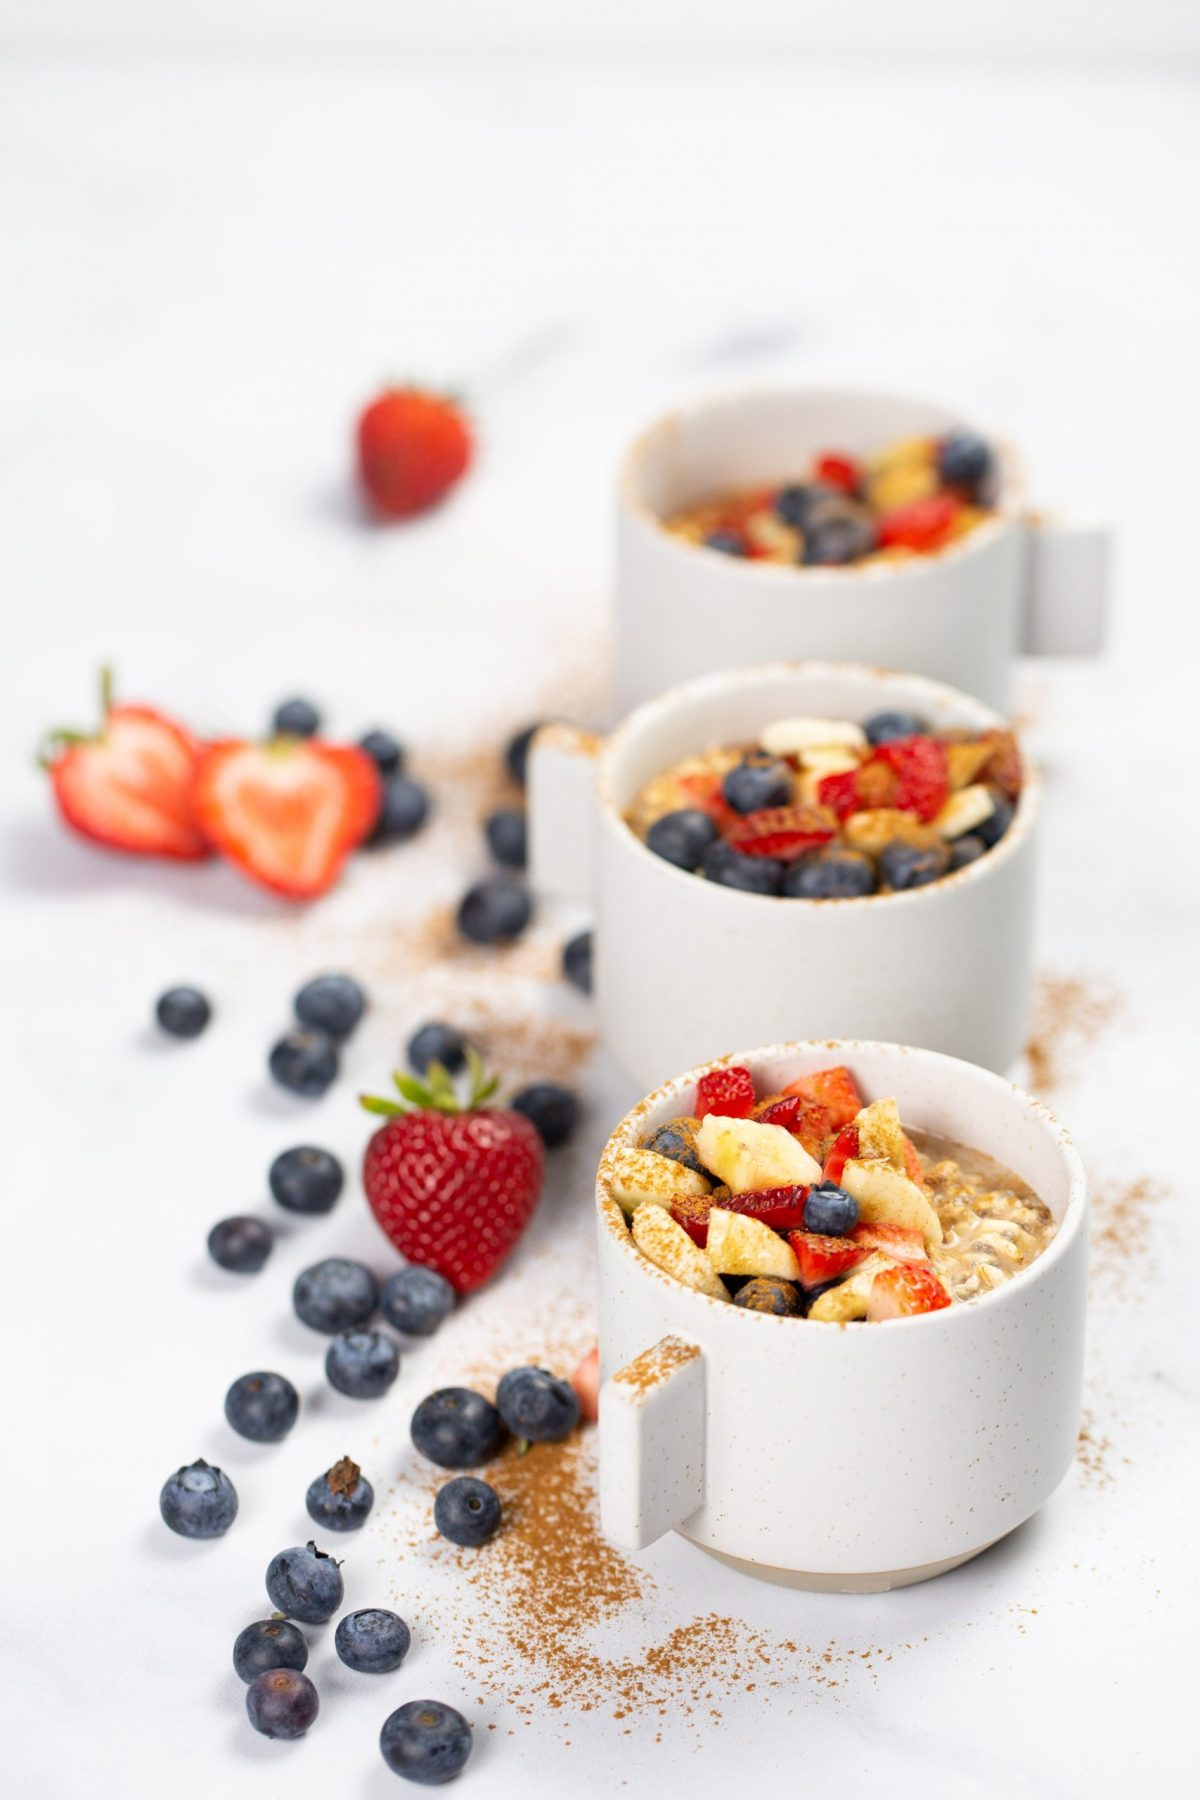 Mugs with overnight oats topped with berries and cground cinammon.